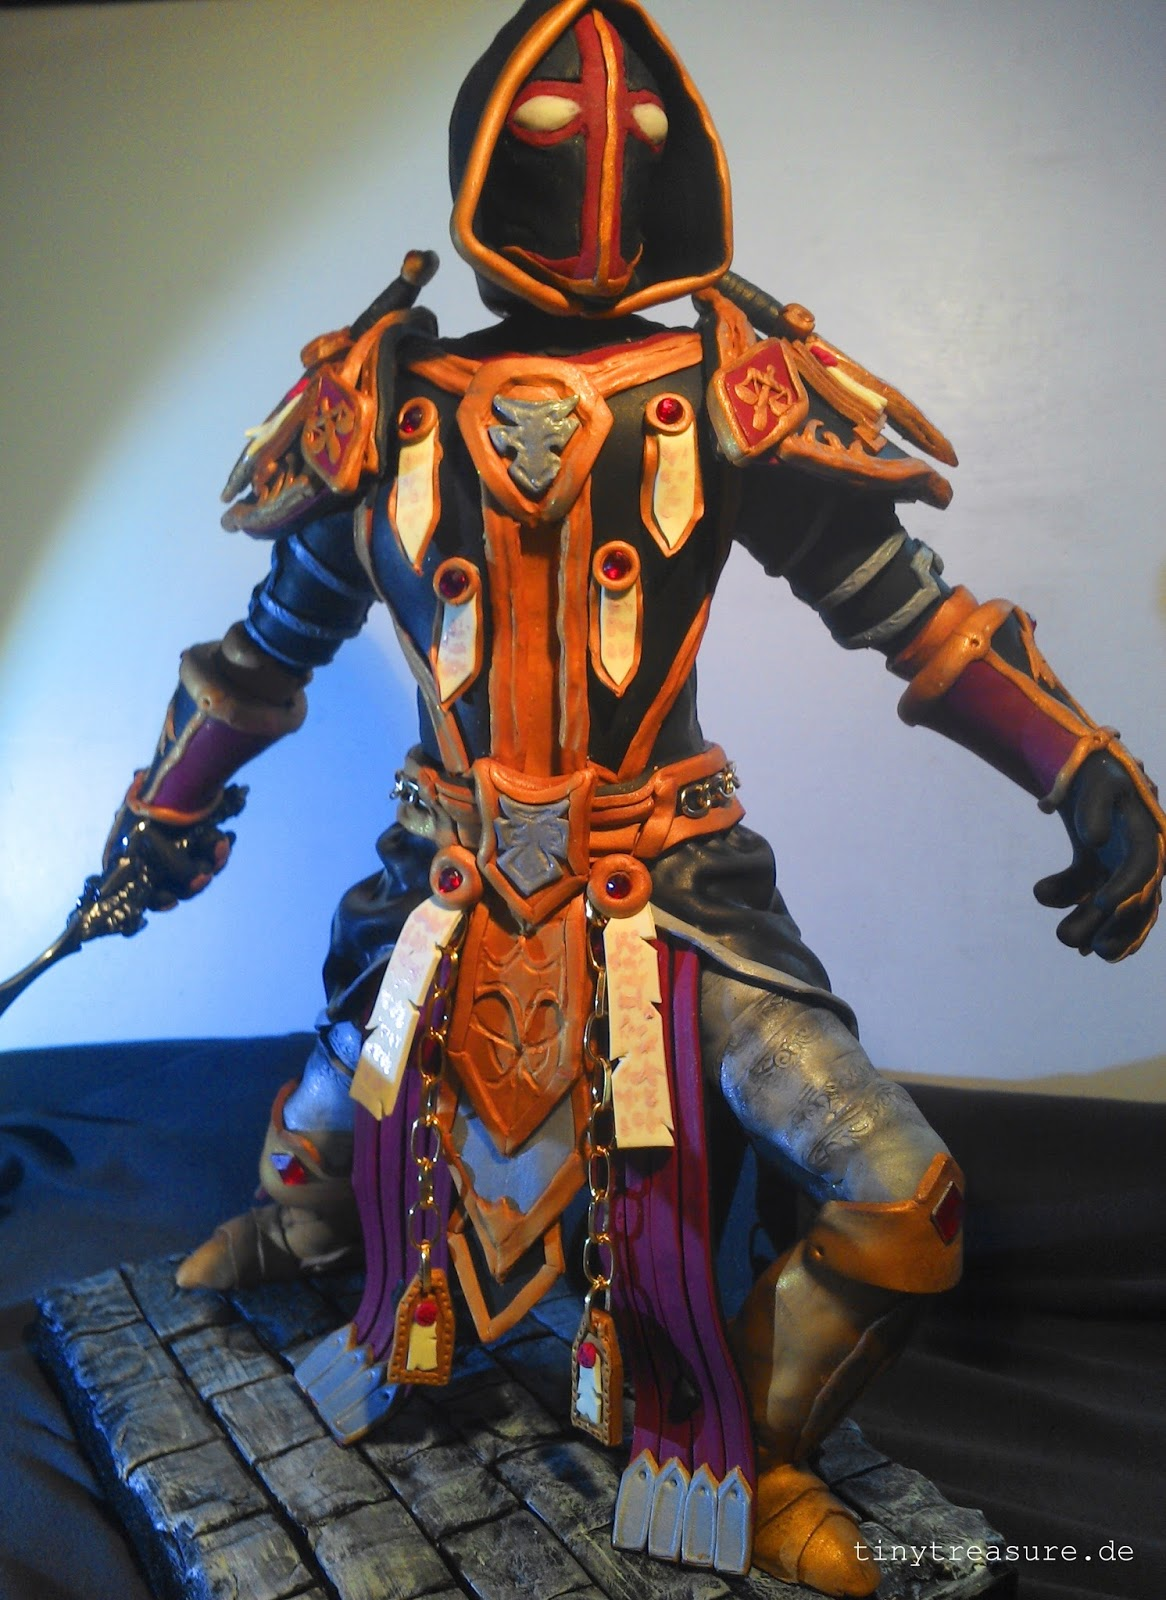 Paladin in t2 judgement armor wow fimo tiny treasure paladin in t2 judgement armor wow fimo publicscrutiny Gallery